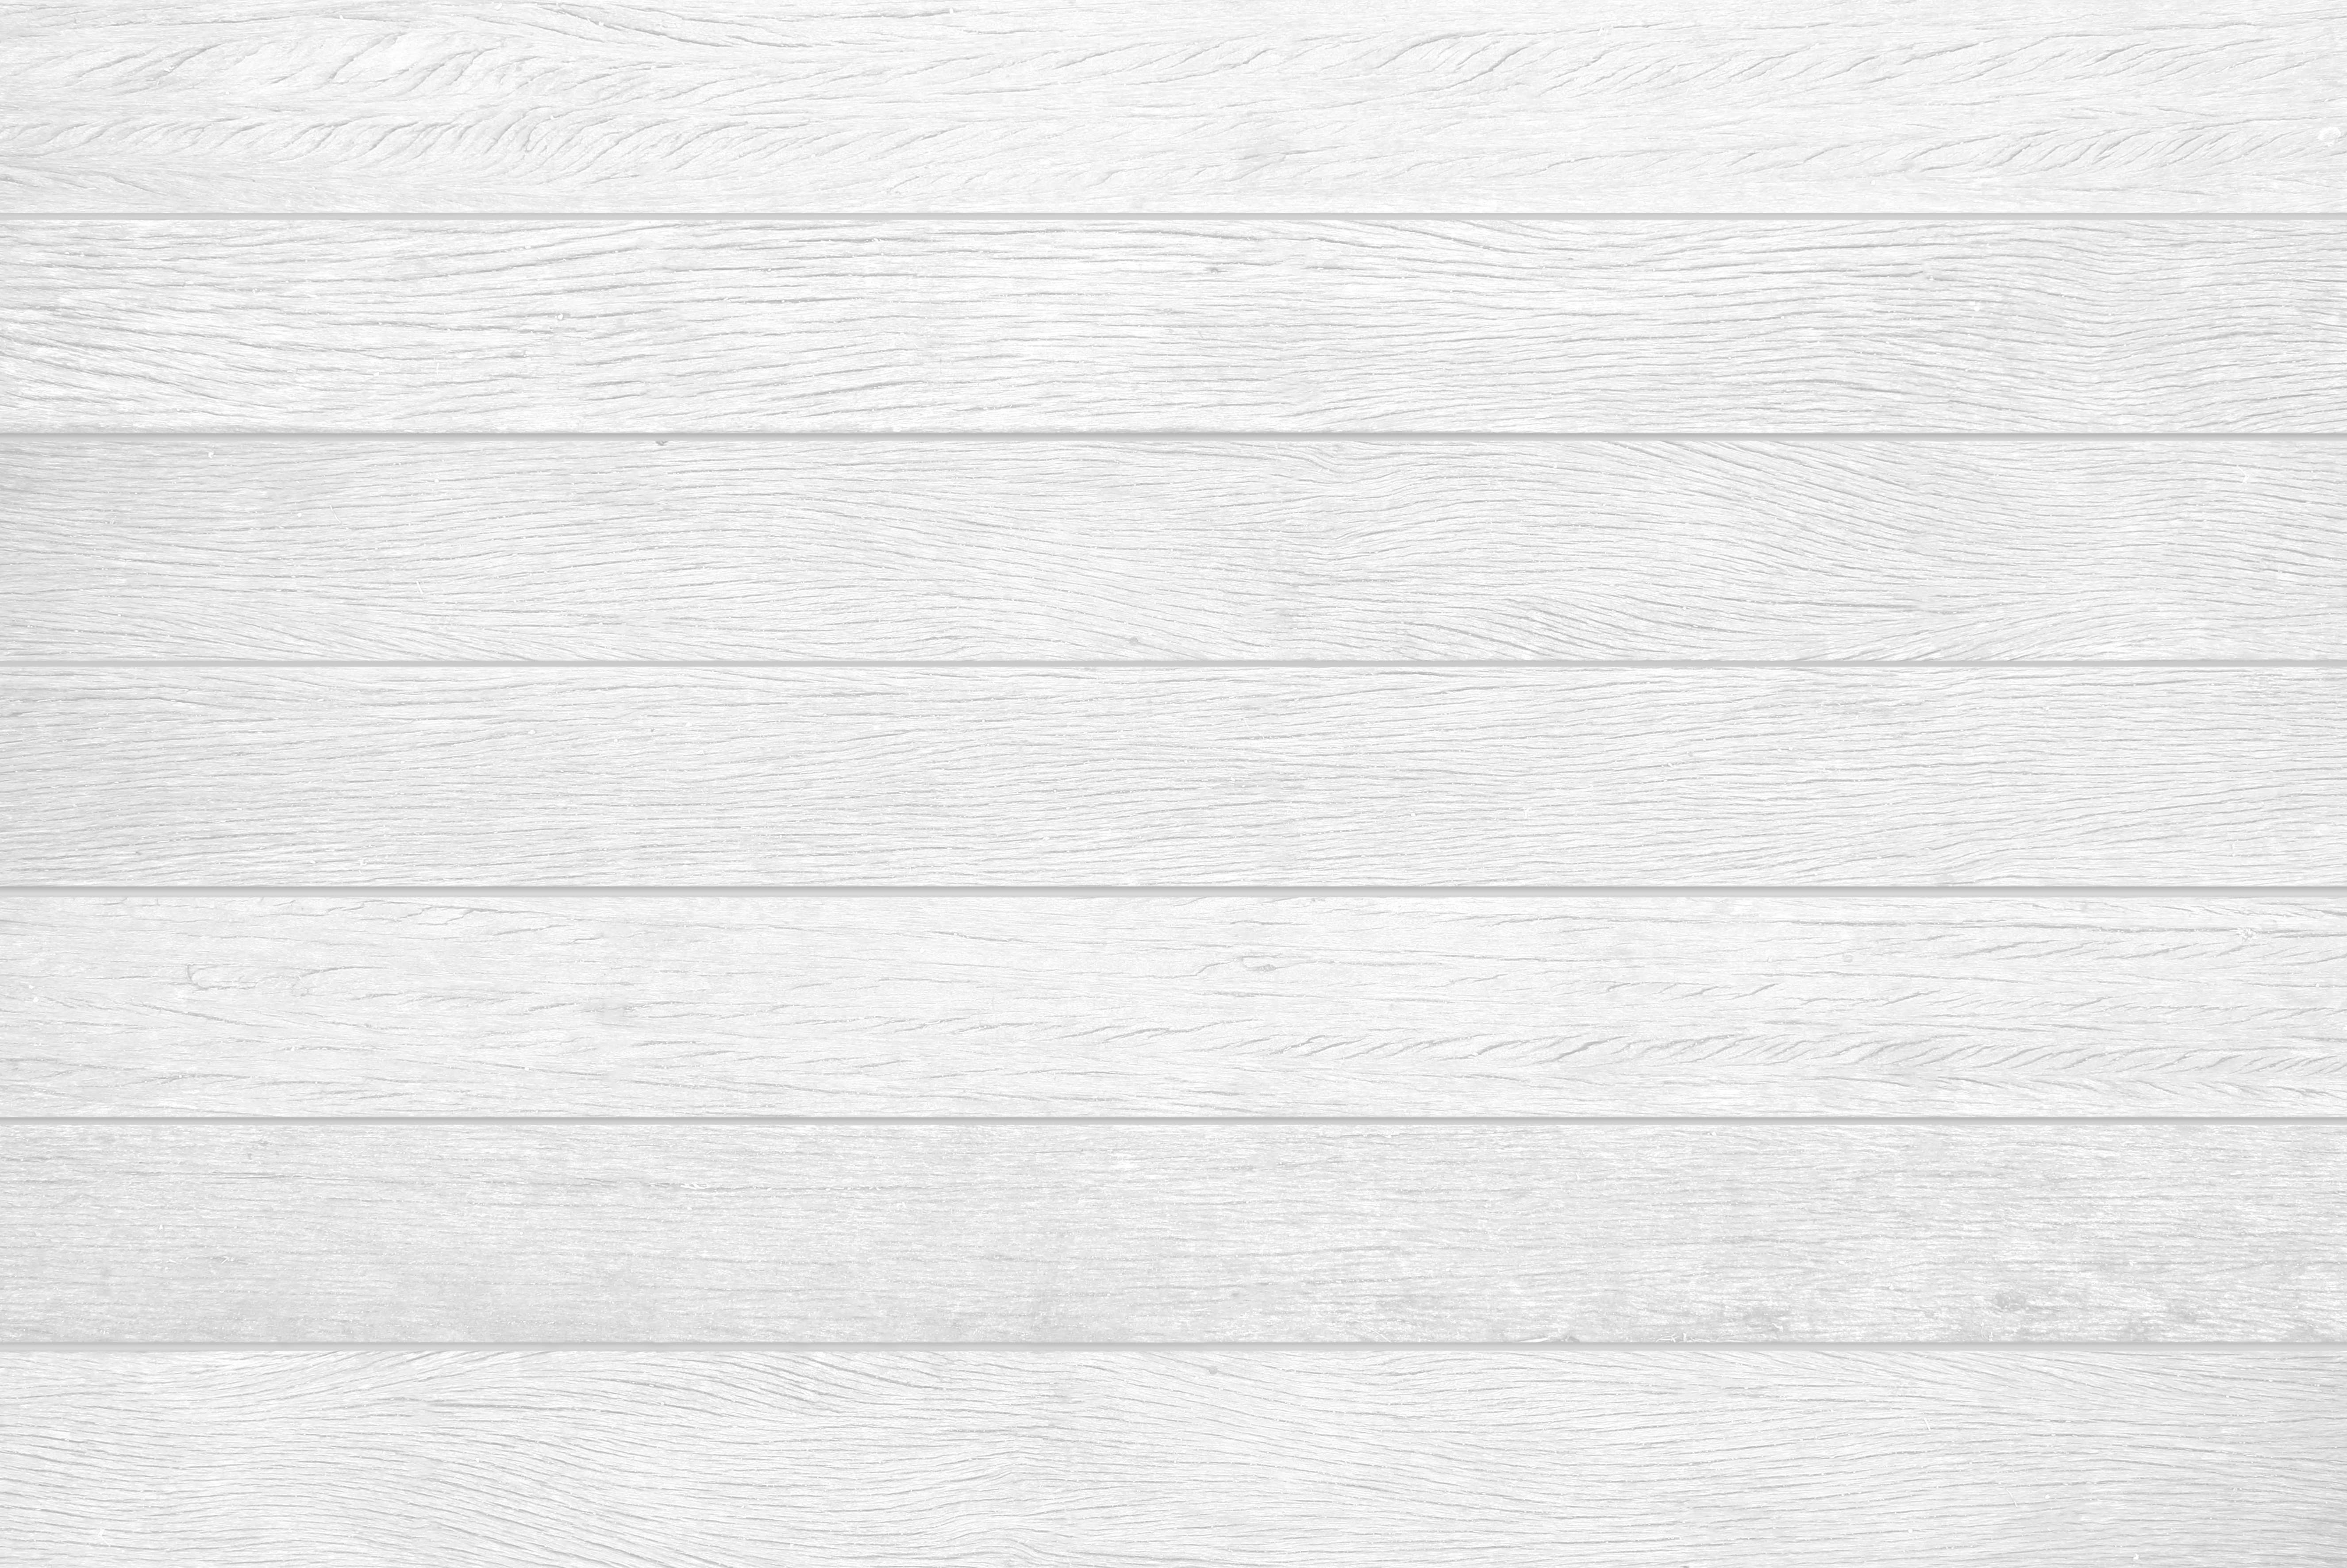 20 white wood floor bg textures by sanches812 on creativemarket photography pinterest. Black Bedroom Furniture Sets. Home Design Ideas